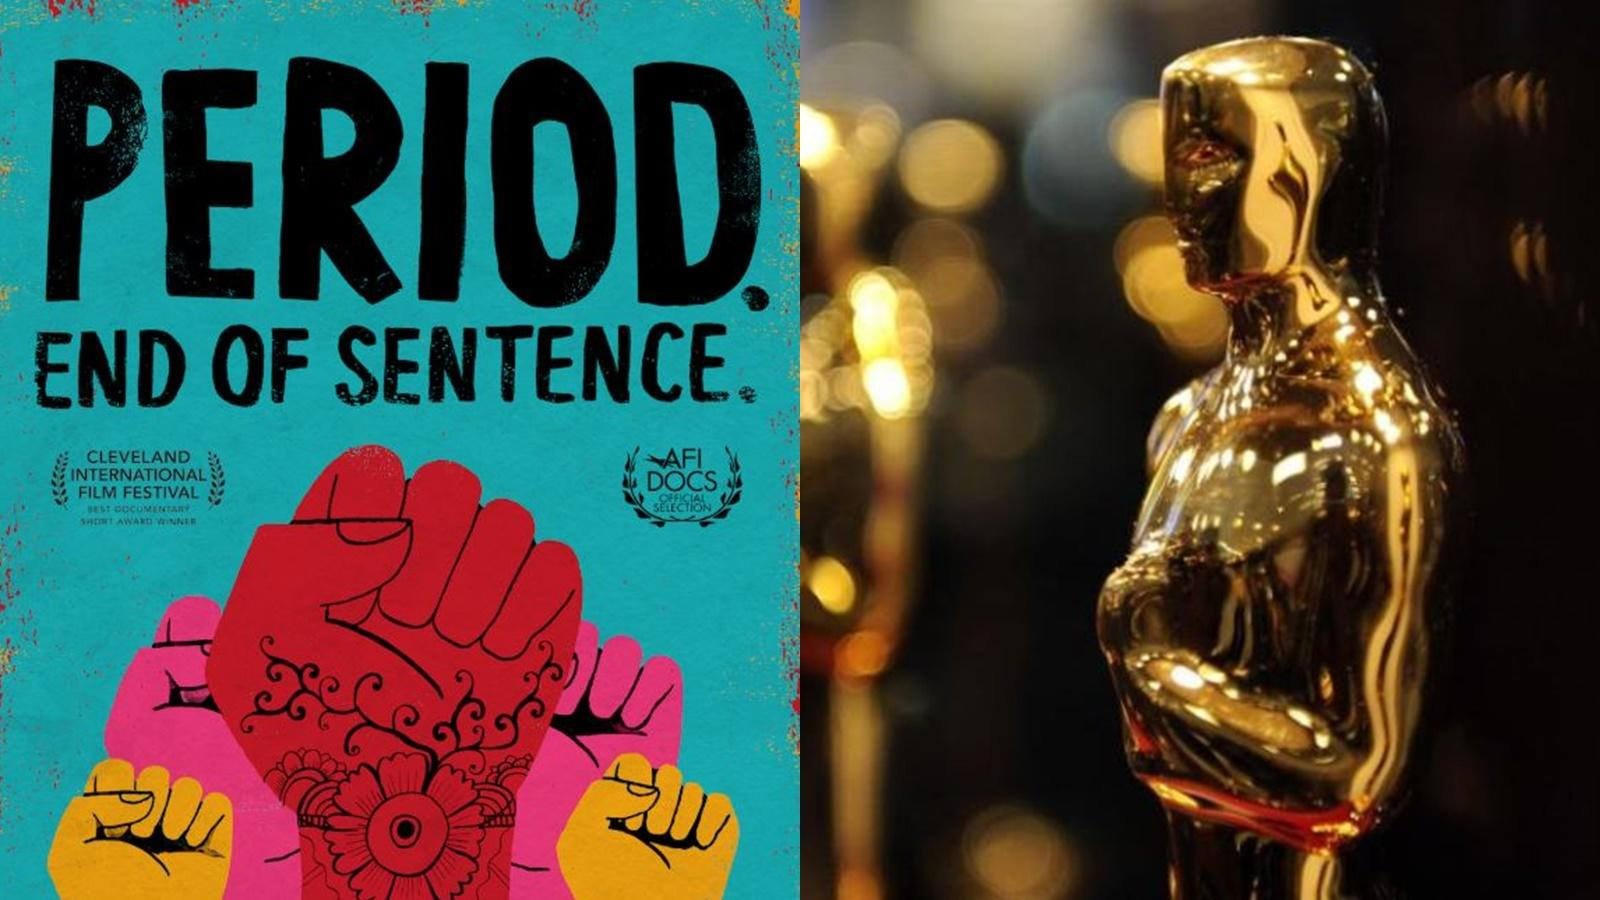 Indian Film On Menstruation Period End Of Sentence Makes It To Oscars Shortlist